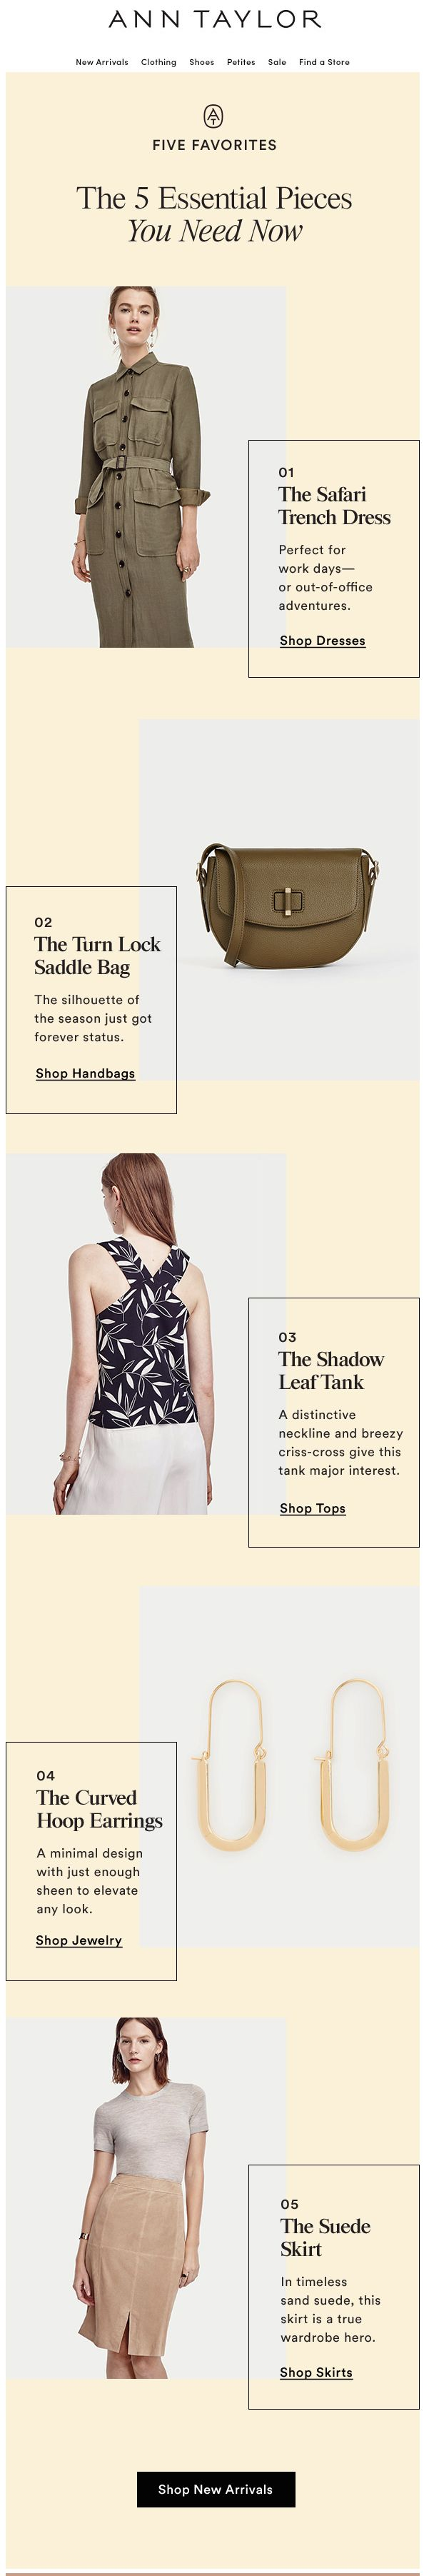 "Ann Taylor chose 5 items to showcase in an ""essential pieces"" email. A shortlist of items inspires and creates focus. Learn more here: http://emaildesign.beefree.io/2016/04/retail-email-design-inspiration-unique-ways-feature-products/"